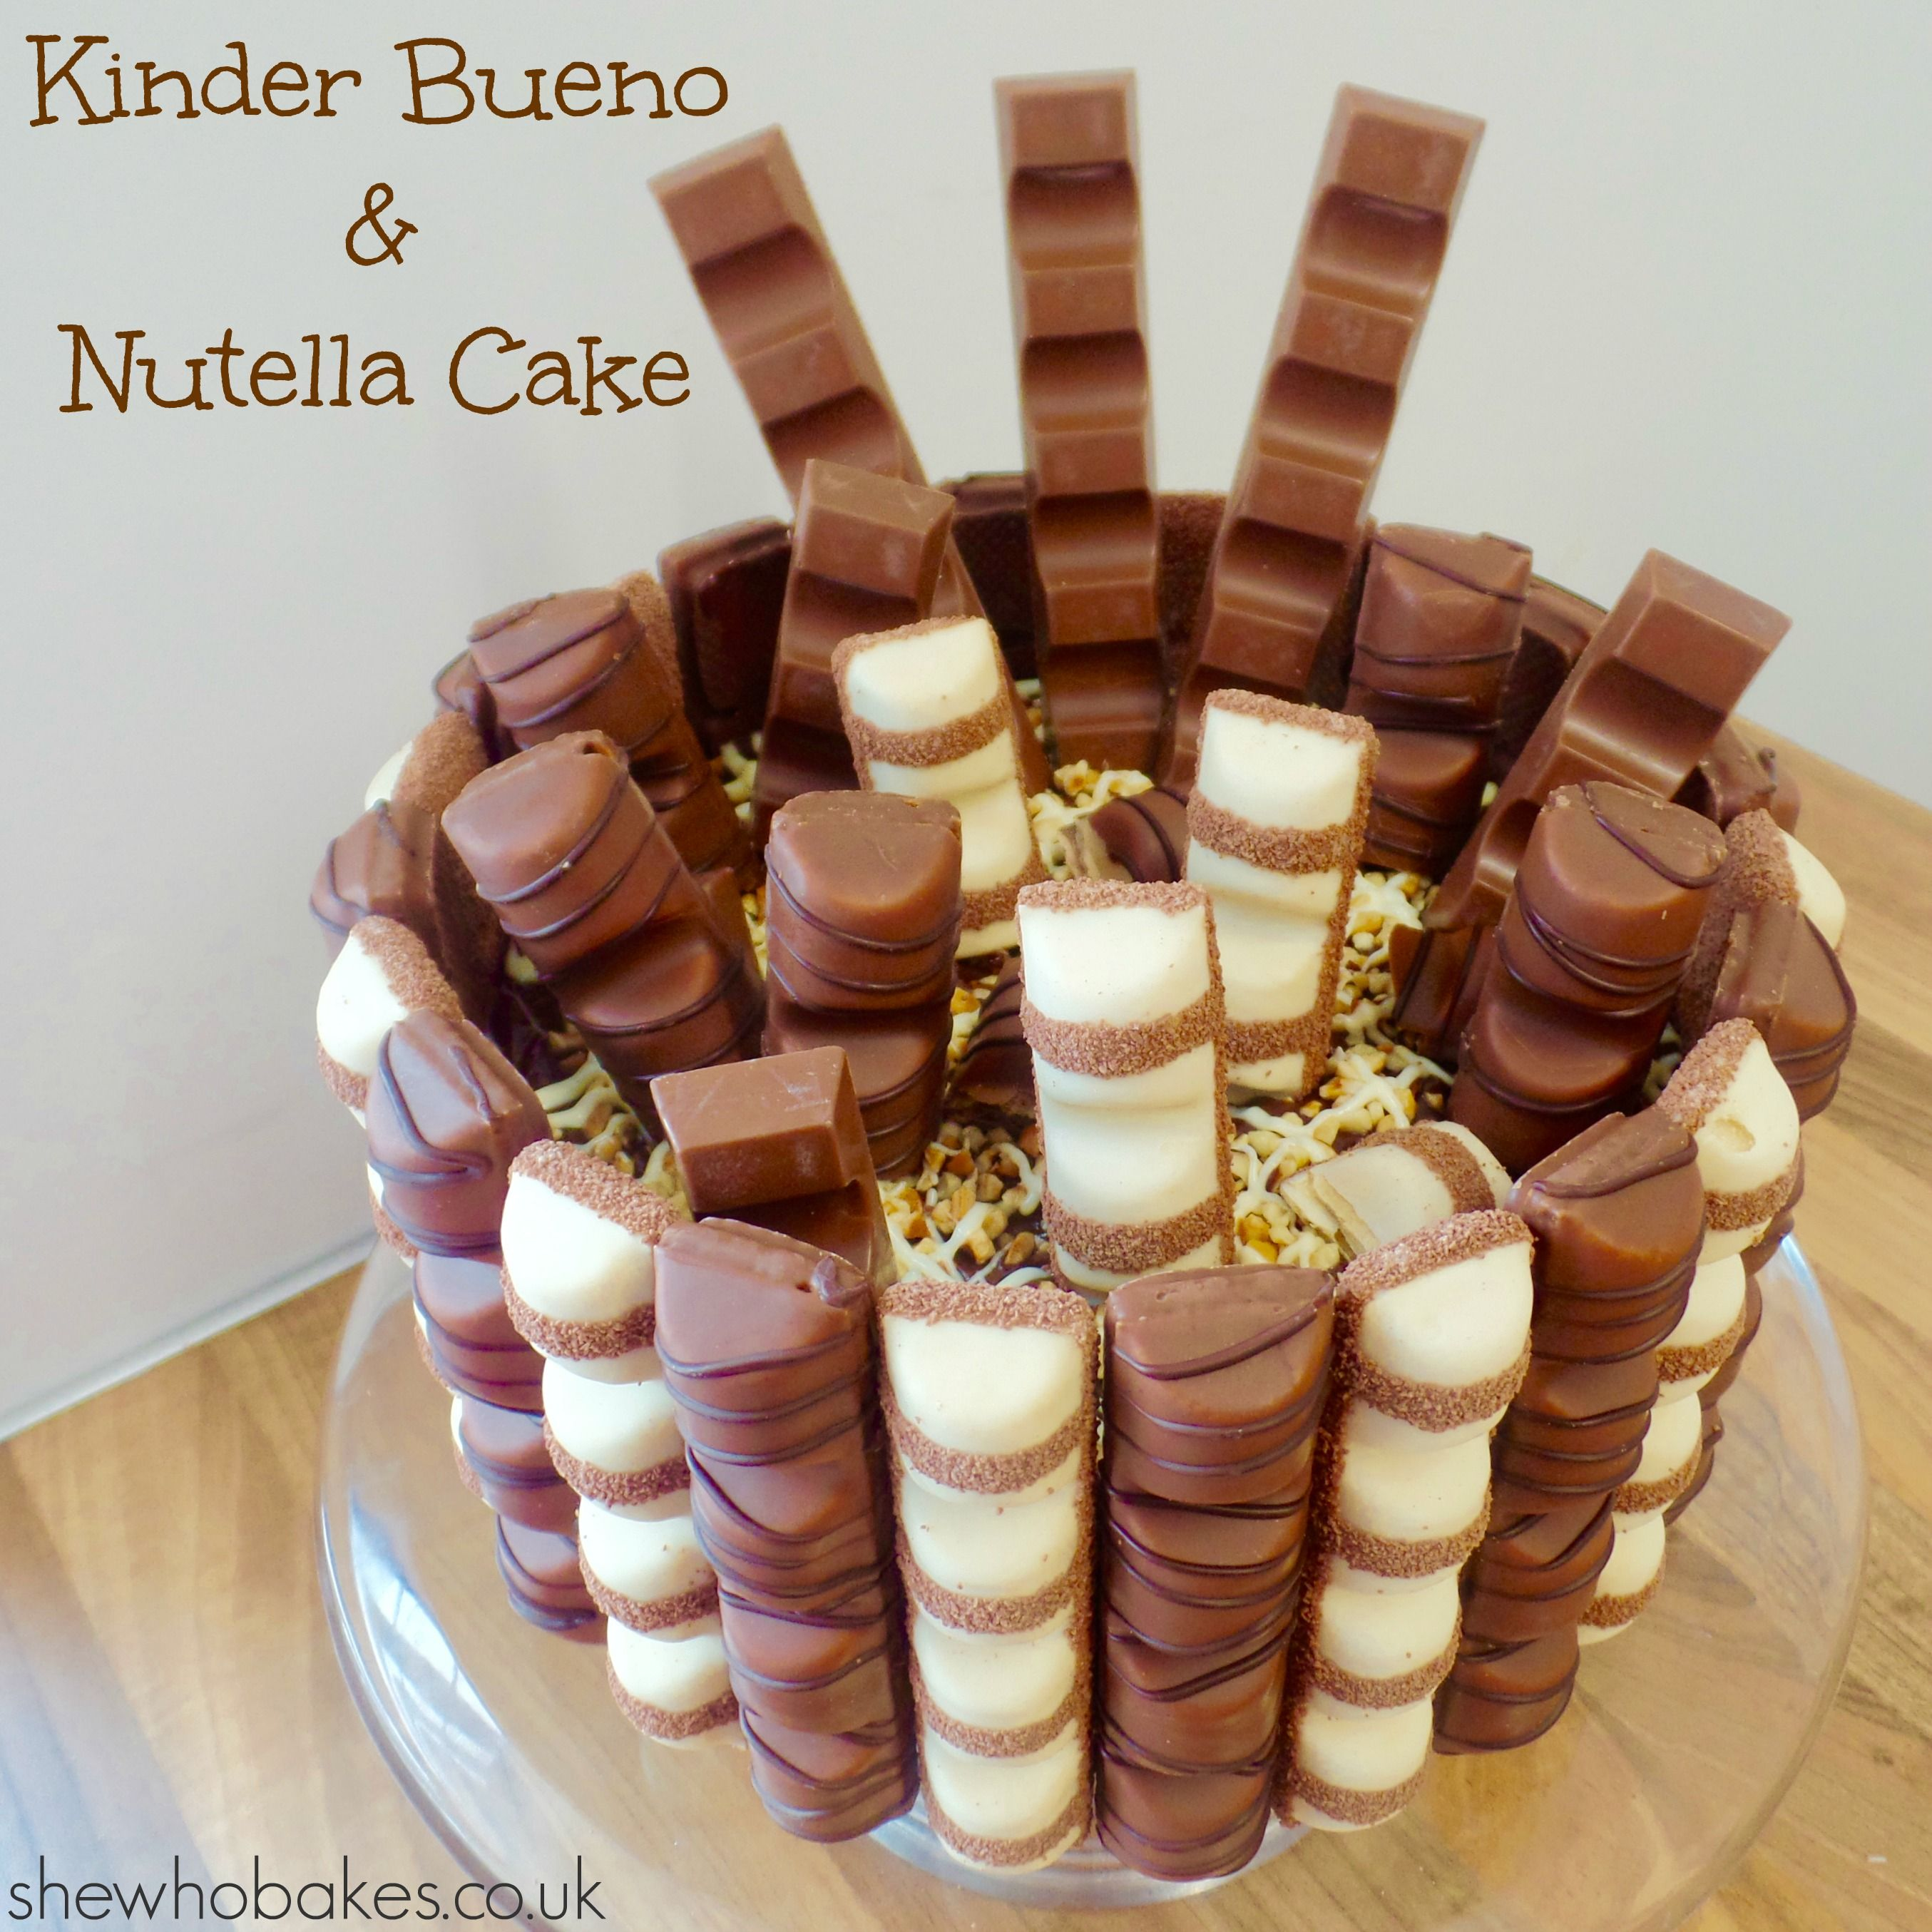 Kinder Bueno Kuchen Selber Machen Kinder Bueno Nutella Cake She Who Bakes Icecream Cake Kids